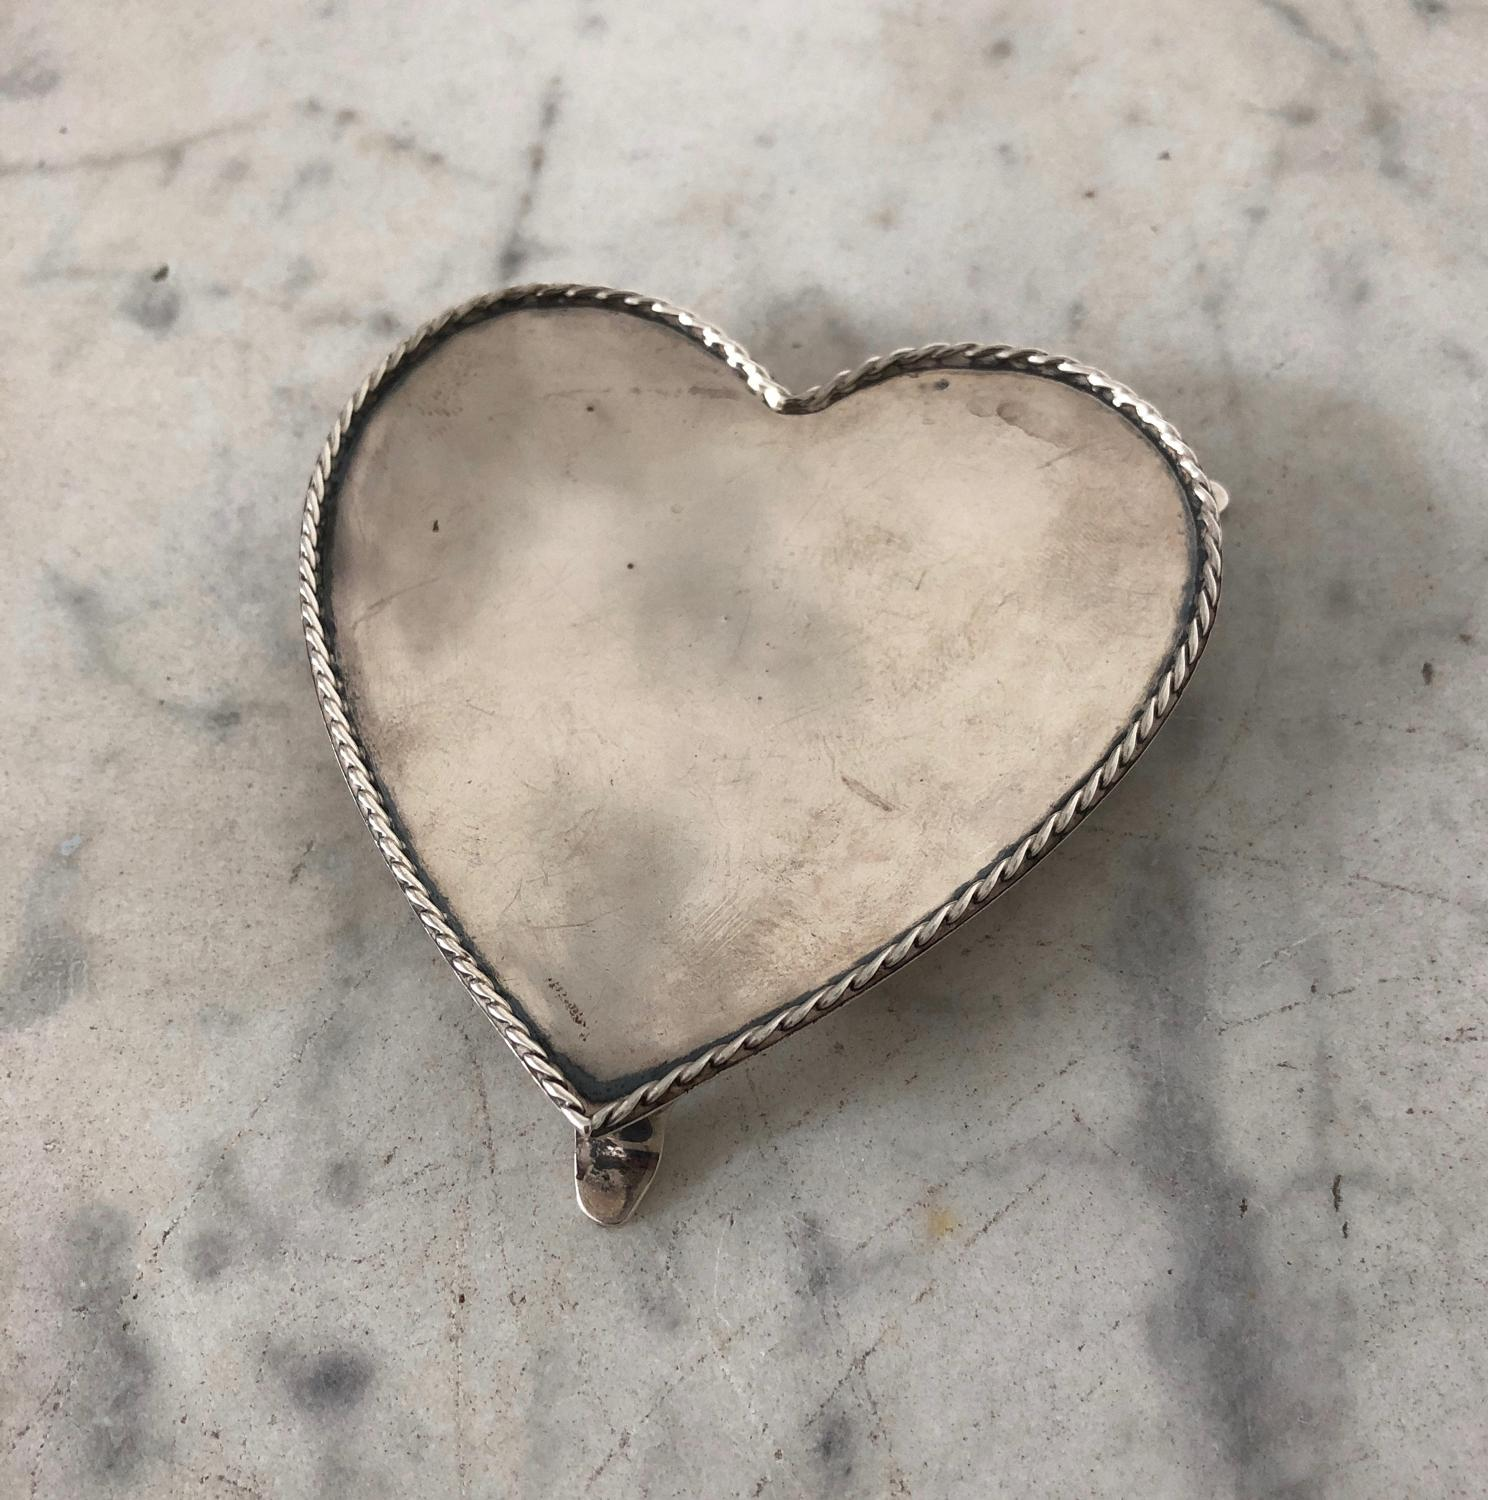 Solid Silver Heart Pin Tray - Hallmark 1920